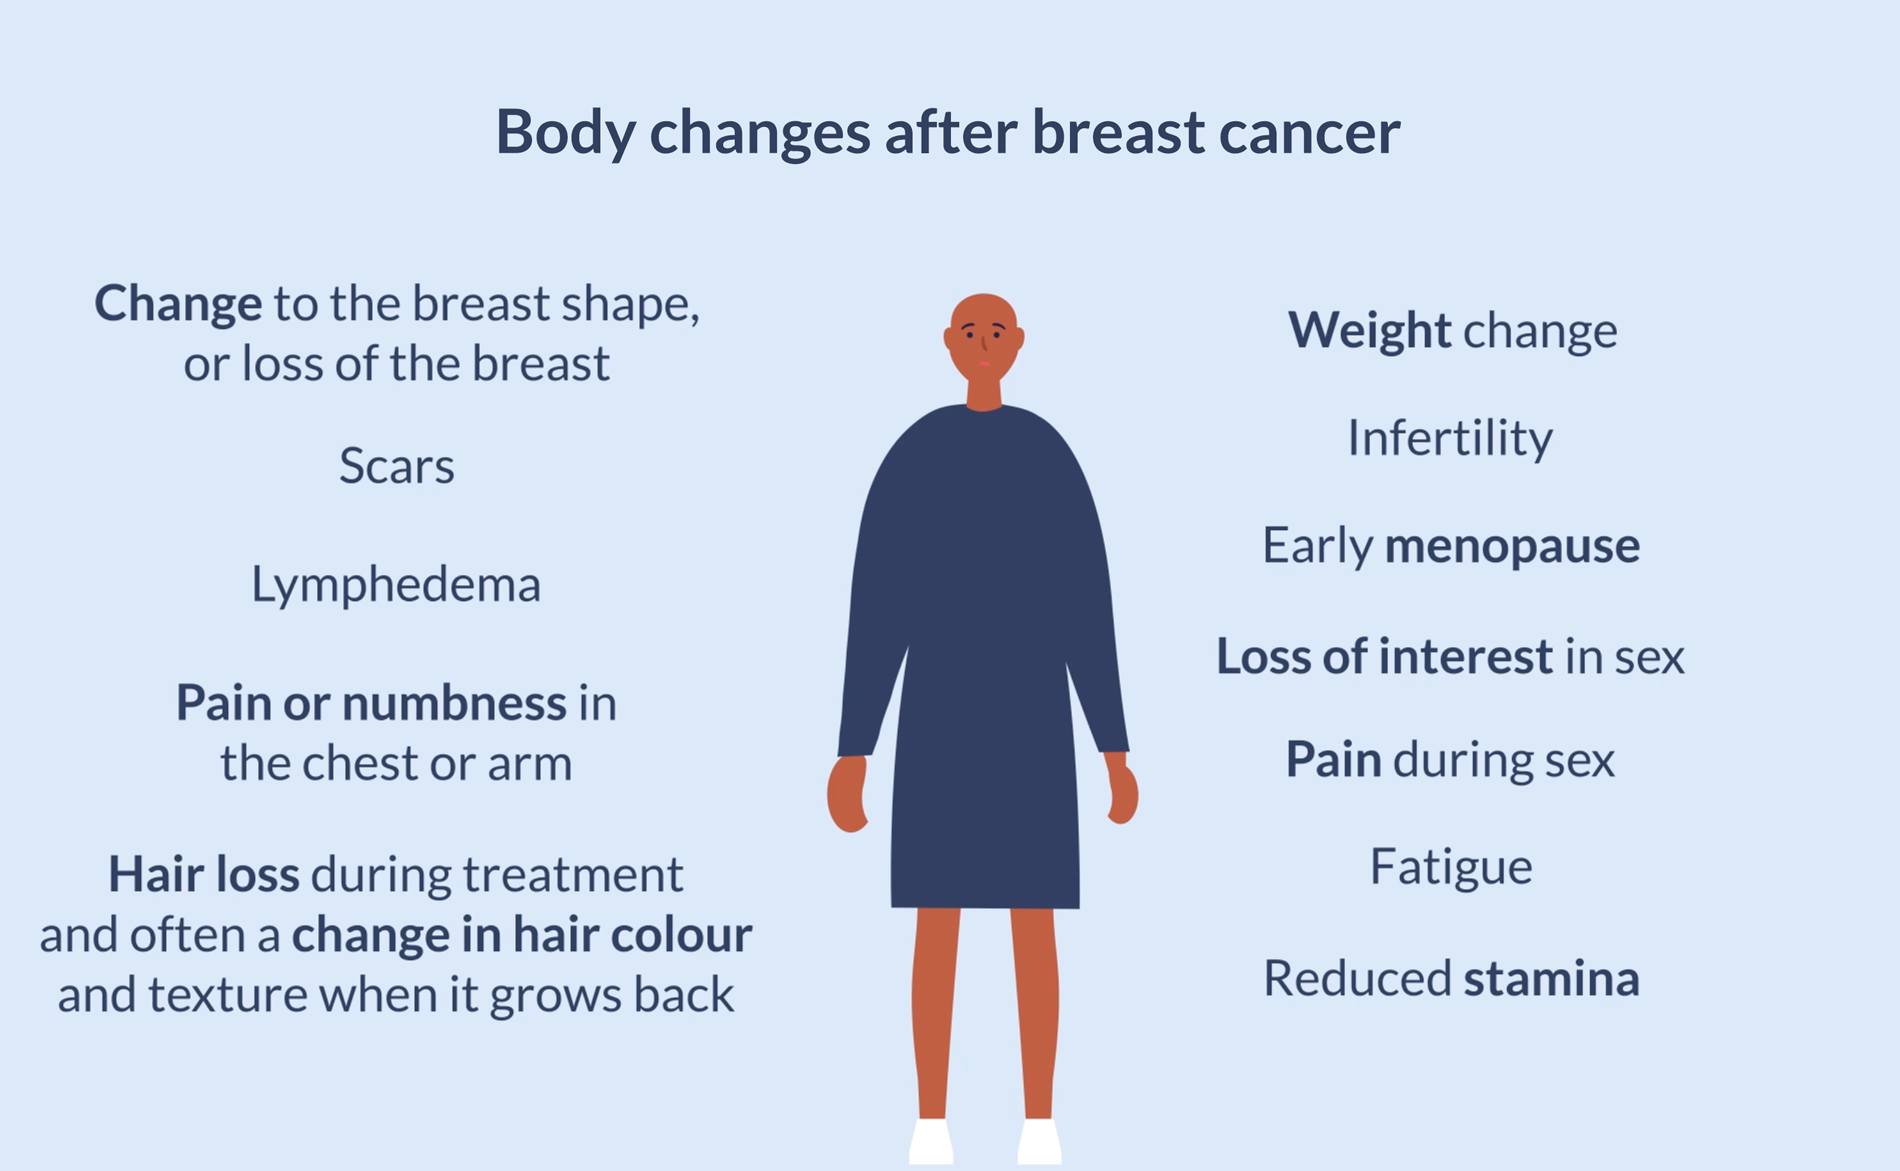 Body changes after breast cancer